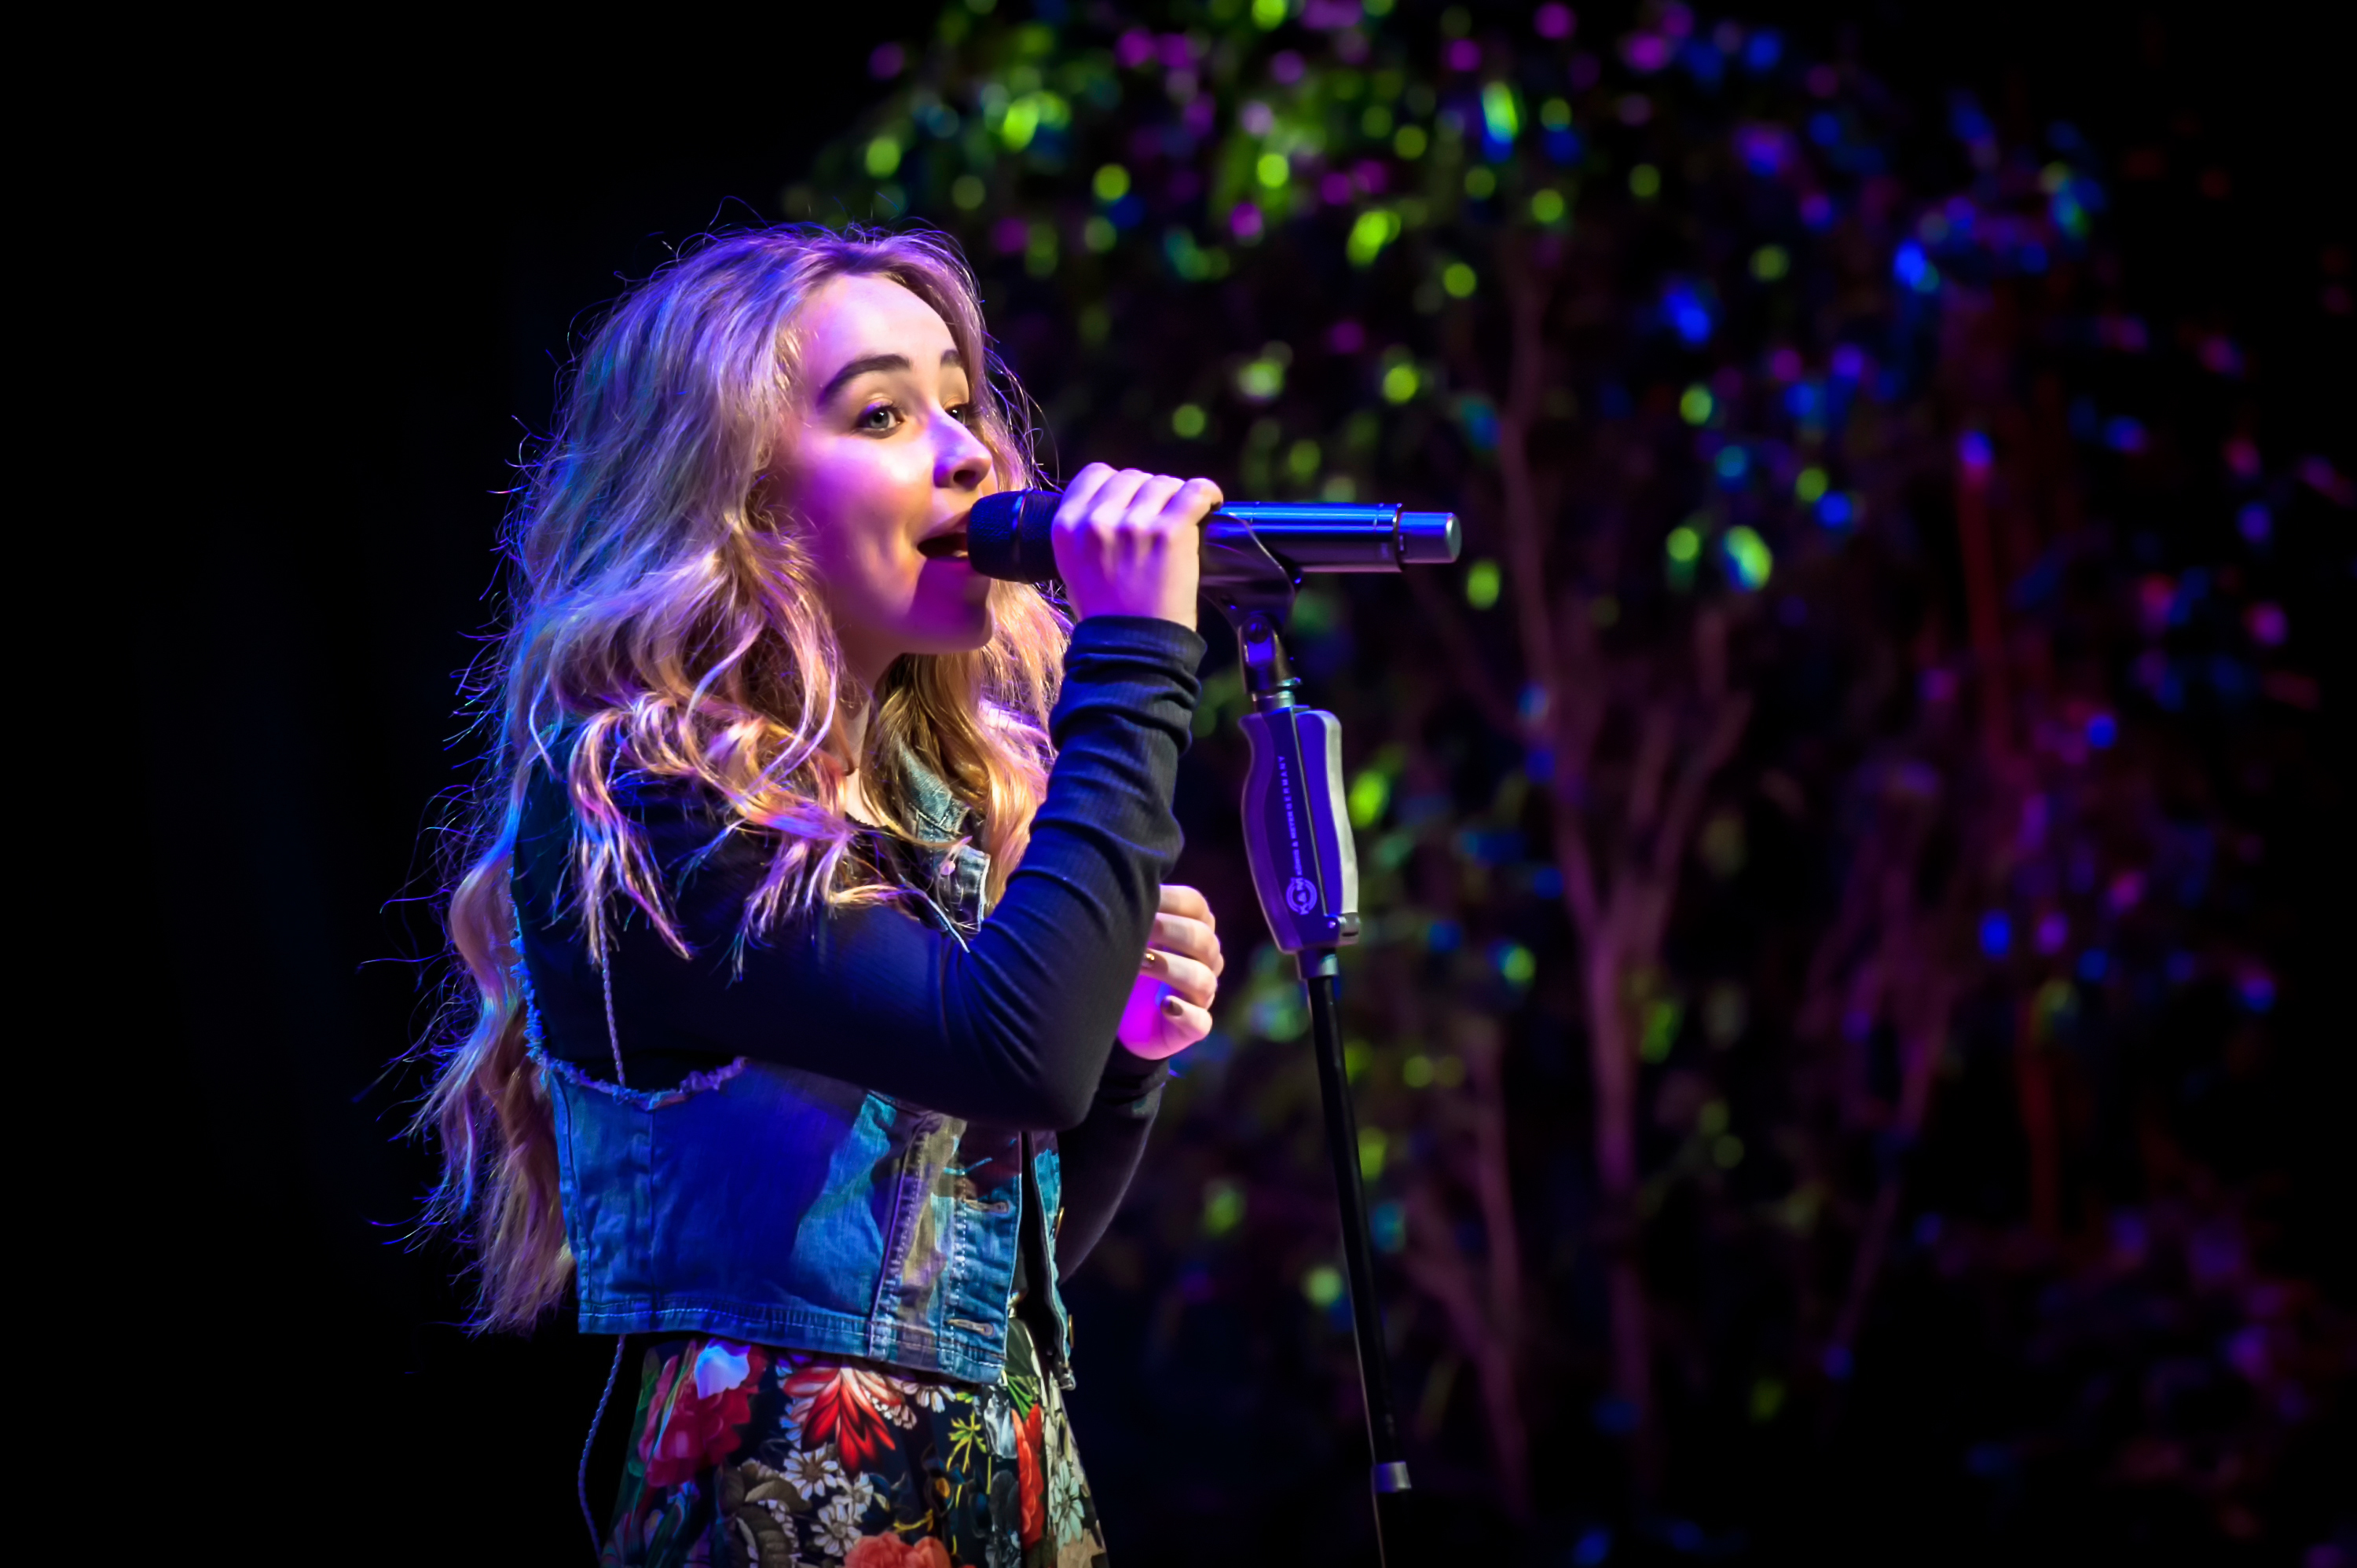 Music_Girl_singing_on_stage_088878_